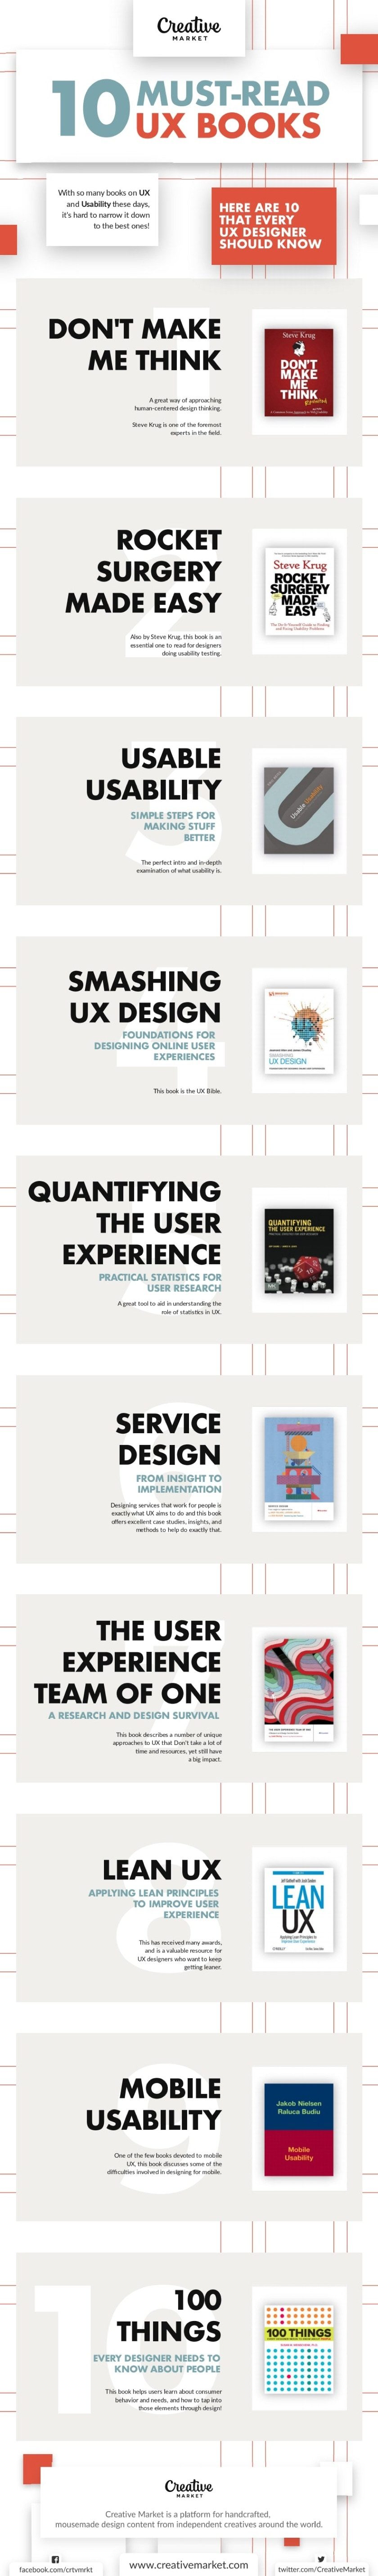 10 best books on UX and usability - full infographic